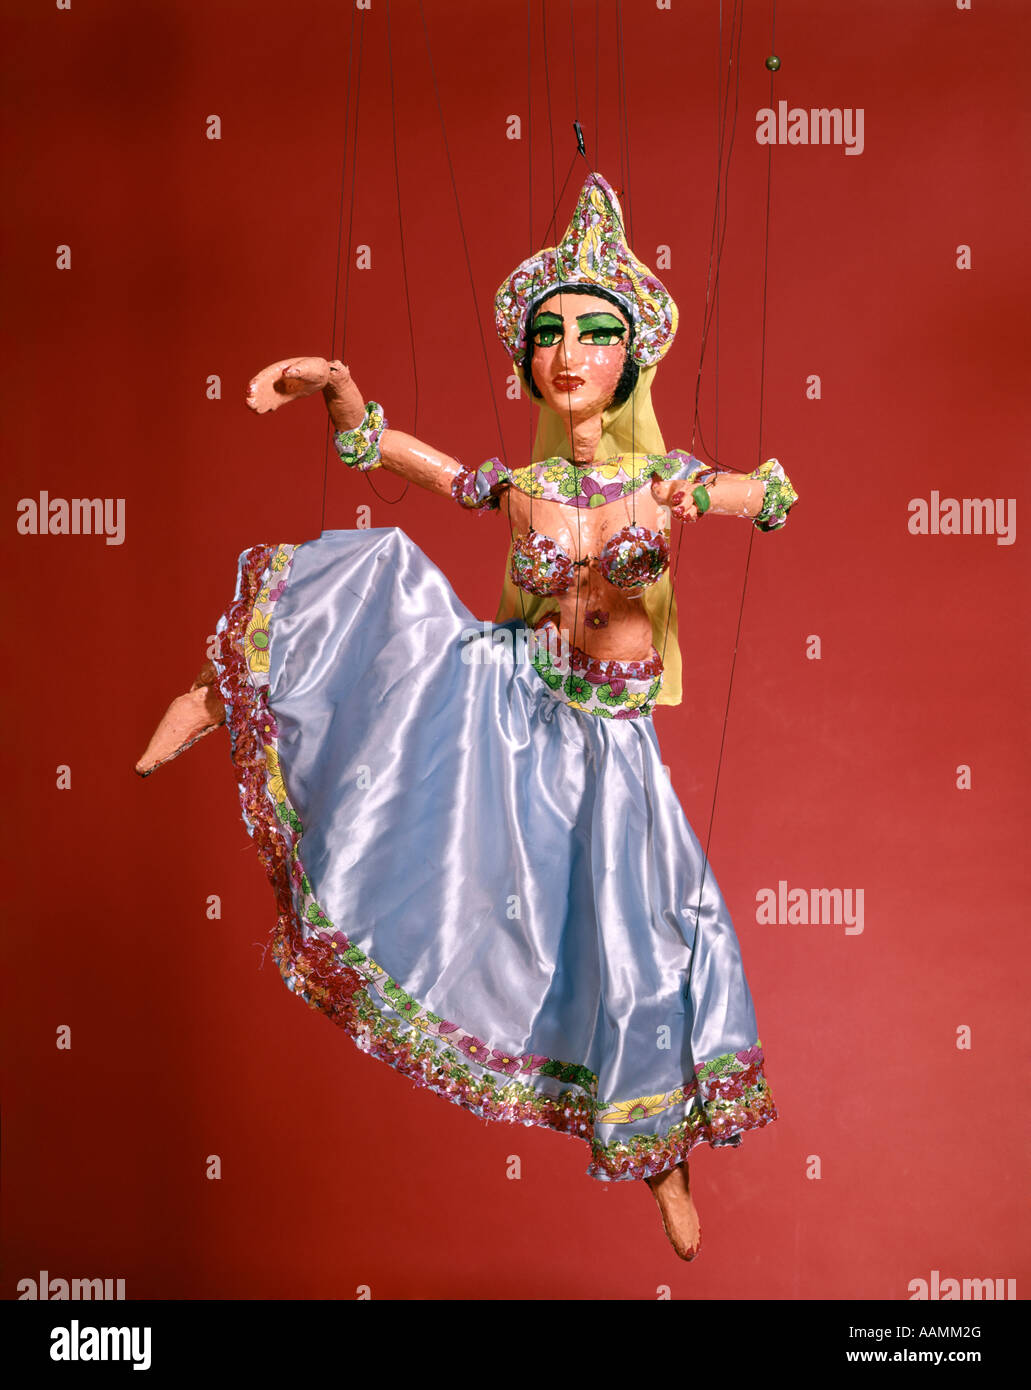 MARIONETTTE PUPPET OF INDIAN BELLY DANCER - Stock Image